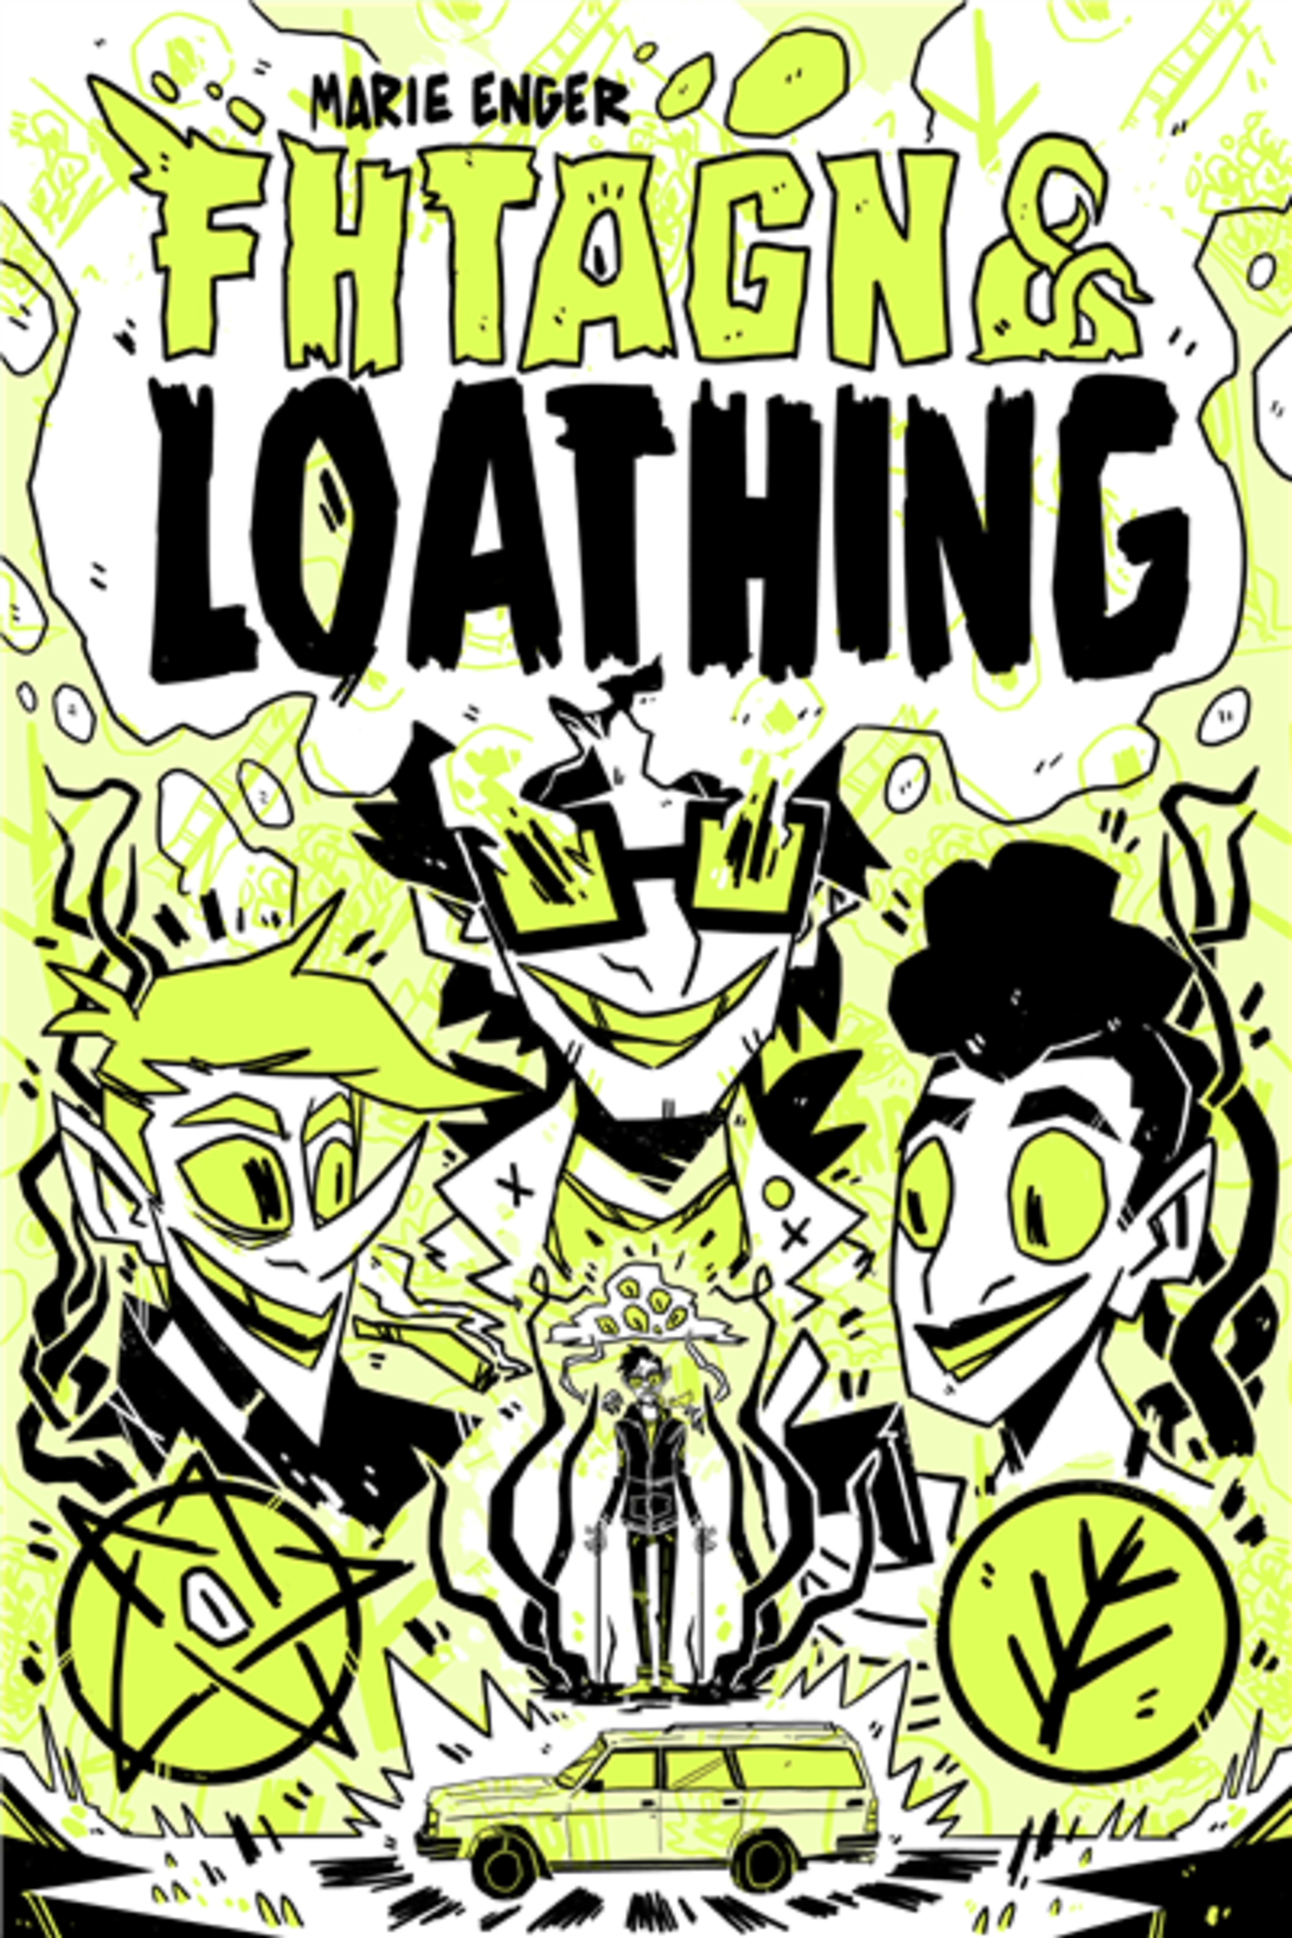 fhtagn-and-loathing.png